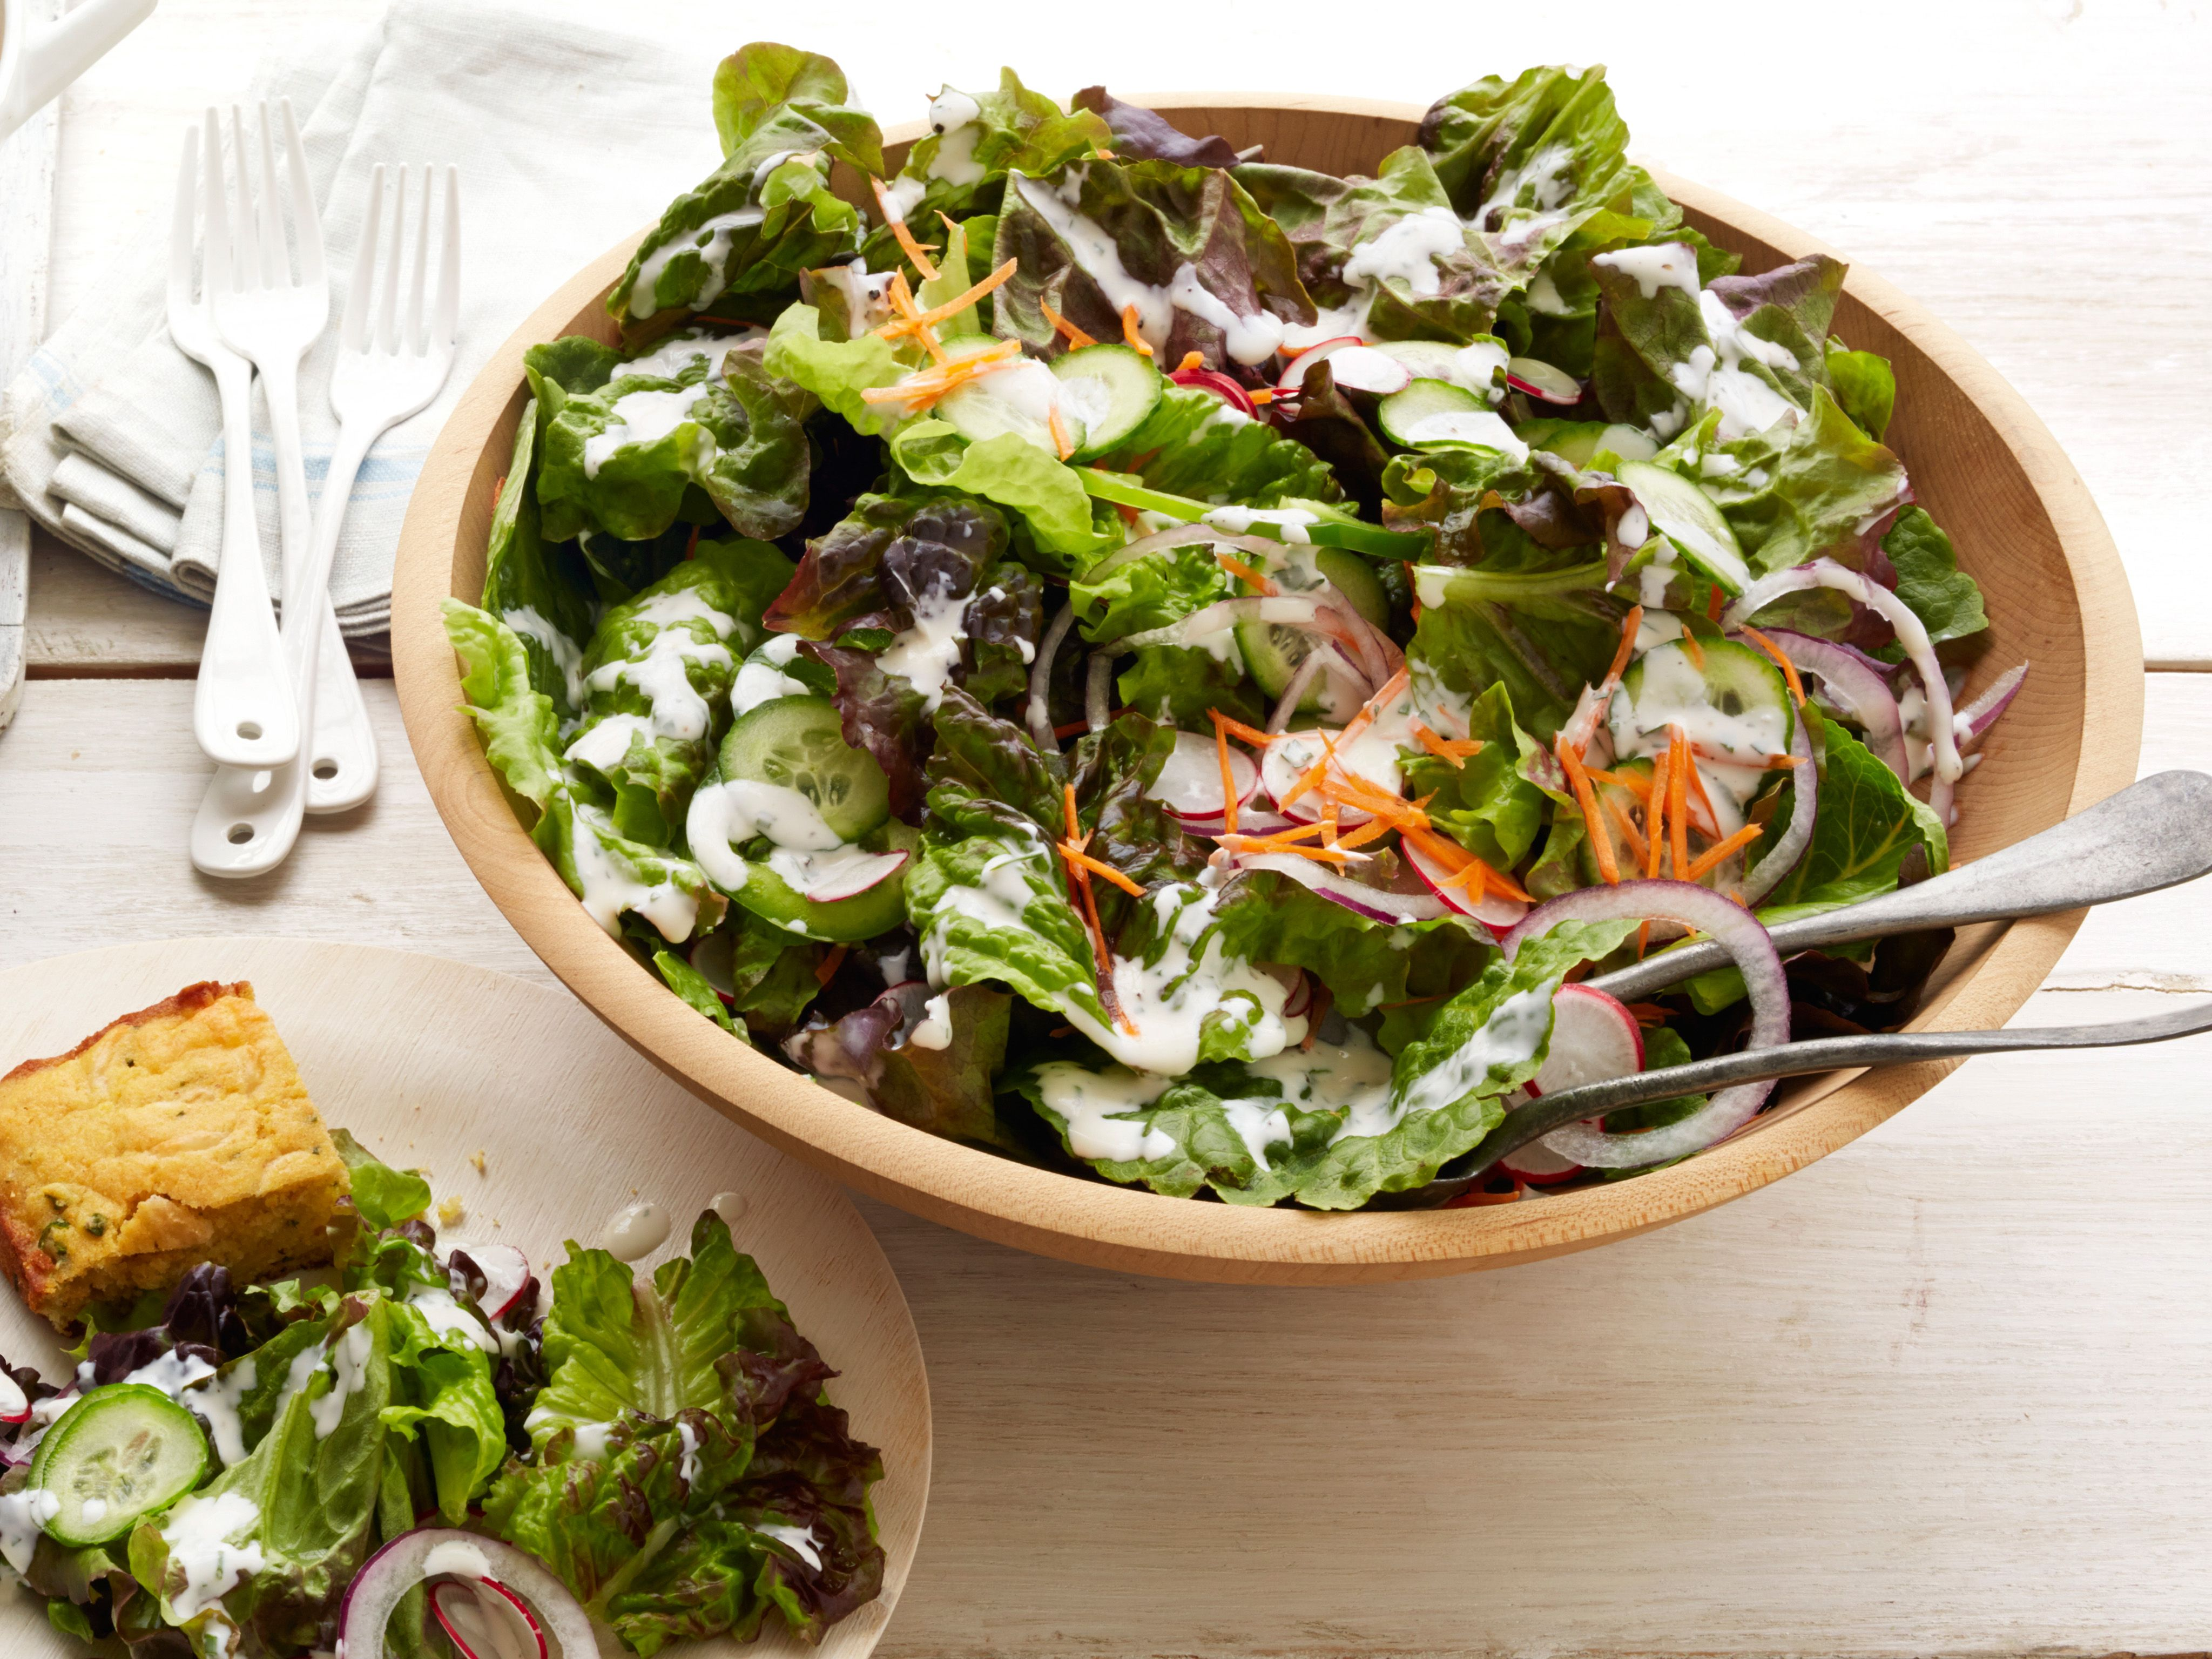 Salad With Buttermilk Ranch Dressing Recipe Buttermilk Ranch Dressing Food Network Recipes Buttermilk Ranch Dressing Recipe